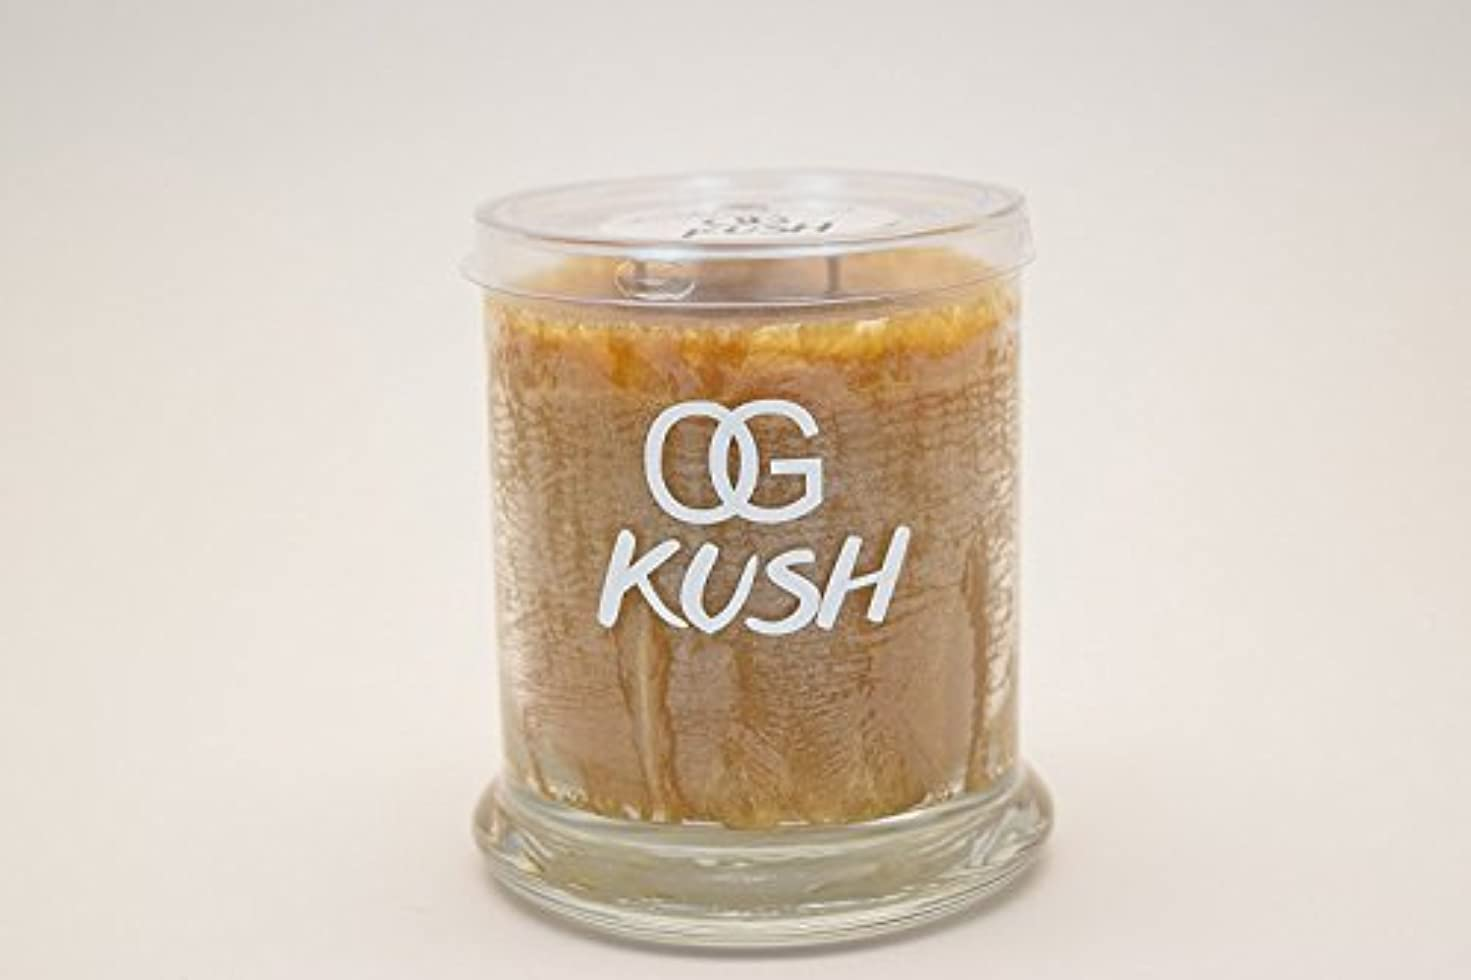 ポイントバトルに賛成Og Kush Scented Candle Regular、M、ジャンボ M OGKPALM10OZ